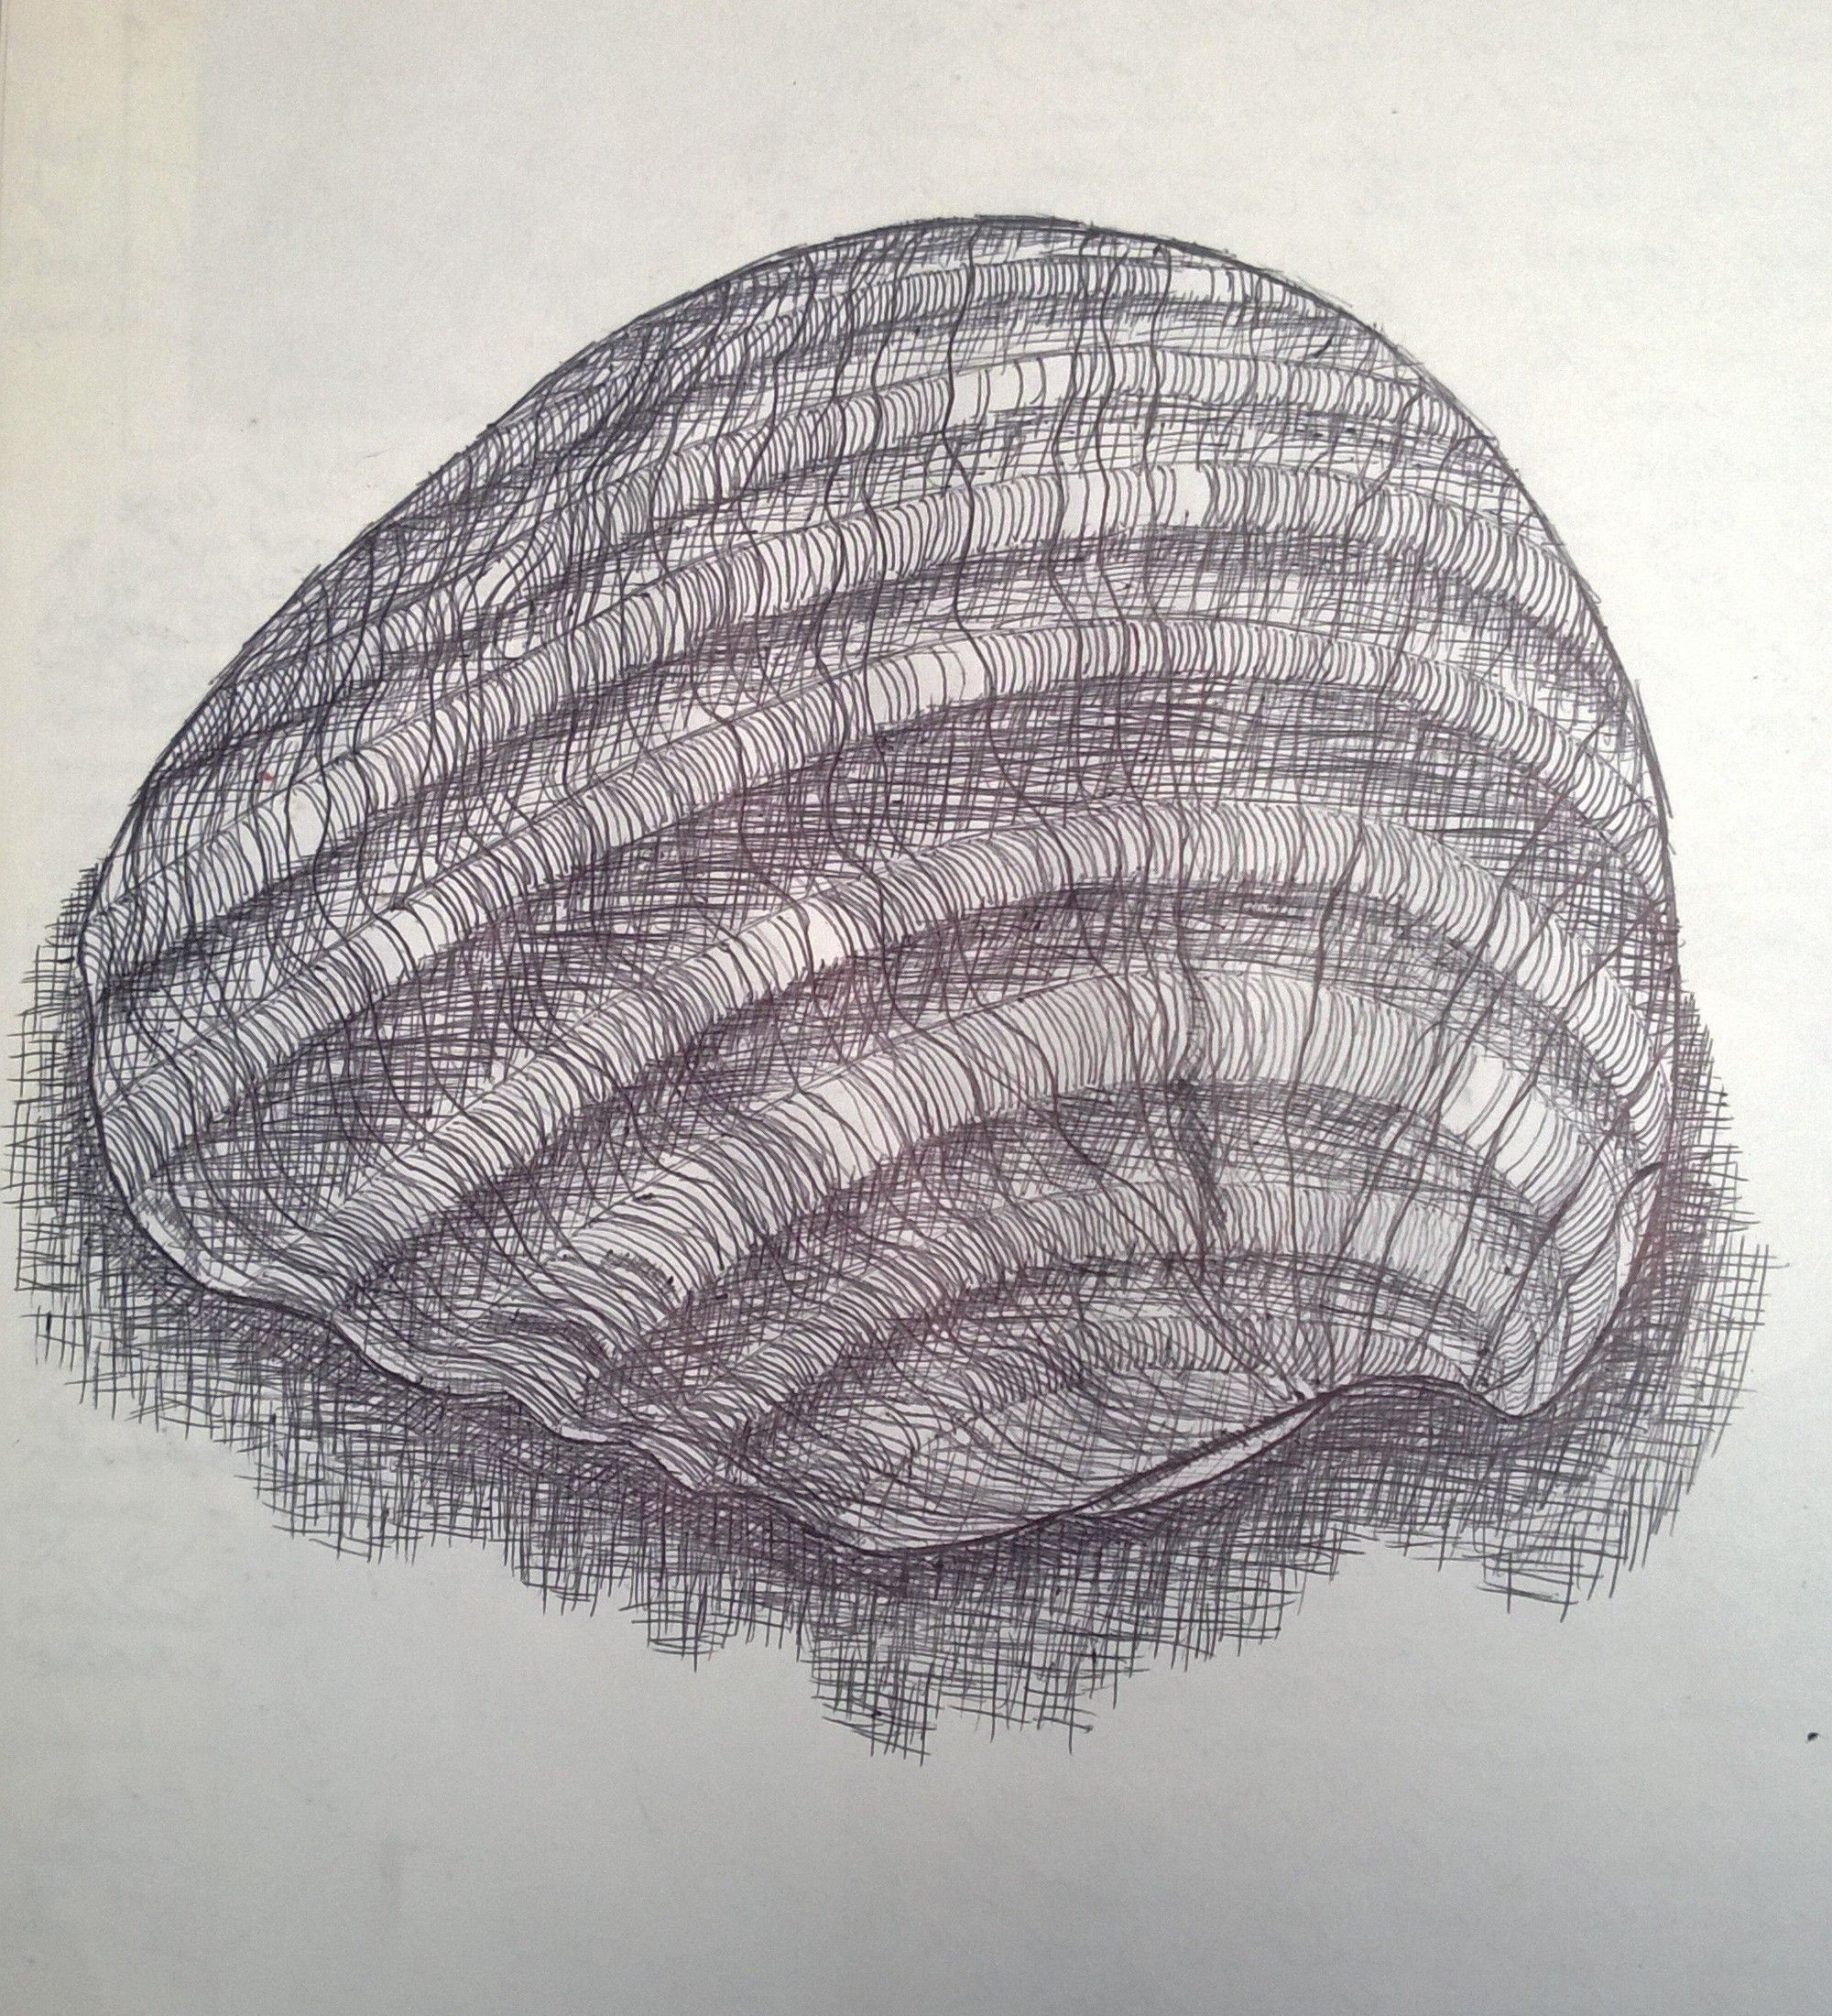 Contour Line Drawing Of Natural Forms : Biro contour line drawing of a seashell note the cross